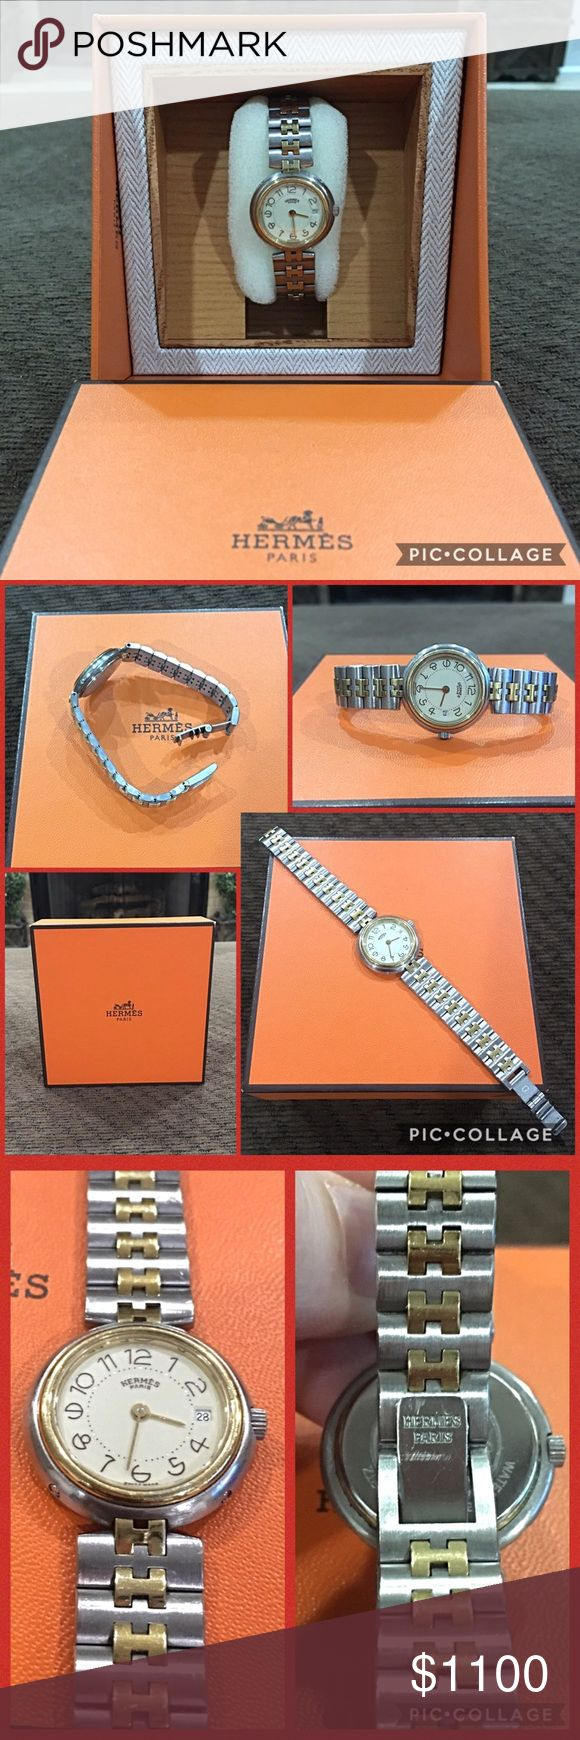 Authentic HERMES Silver/Gold H Chain Link Watch This is a gorgeous AUTHENTIC Hermes Stainless Steel Silver/Gold tone H chainlink watch in excellent working condition. Some scratching throughout. Has a deployment clasp, and is water resistant. Comes with Hermes watch box. This purchase also comes with free POSH concierge service which guarantees the authenticity and item condition. Hermes Accessories Watches